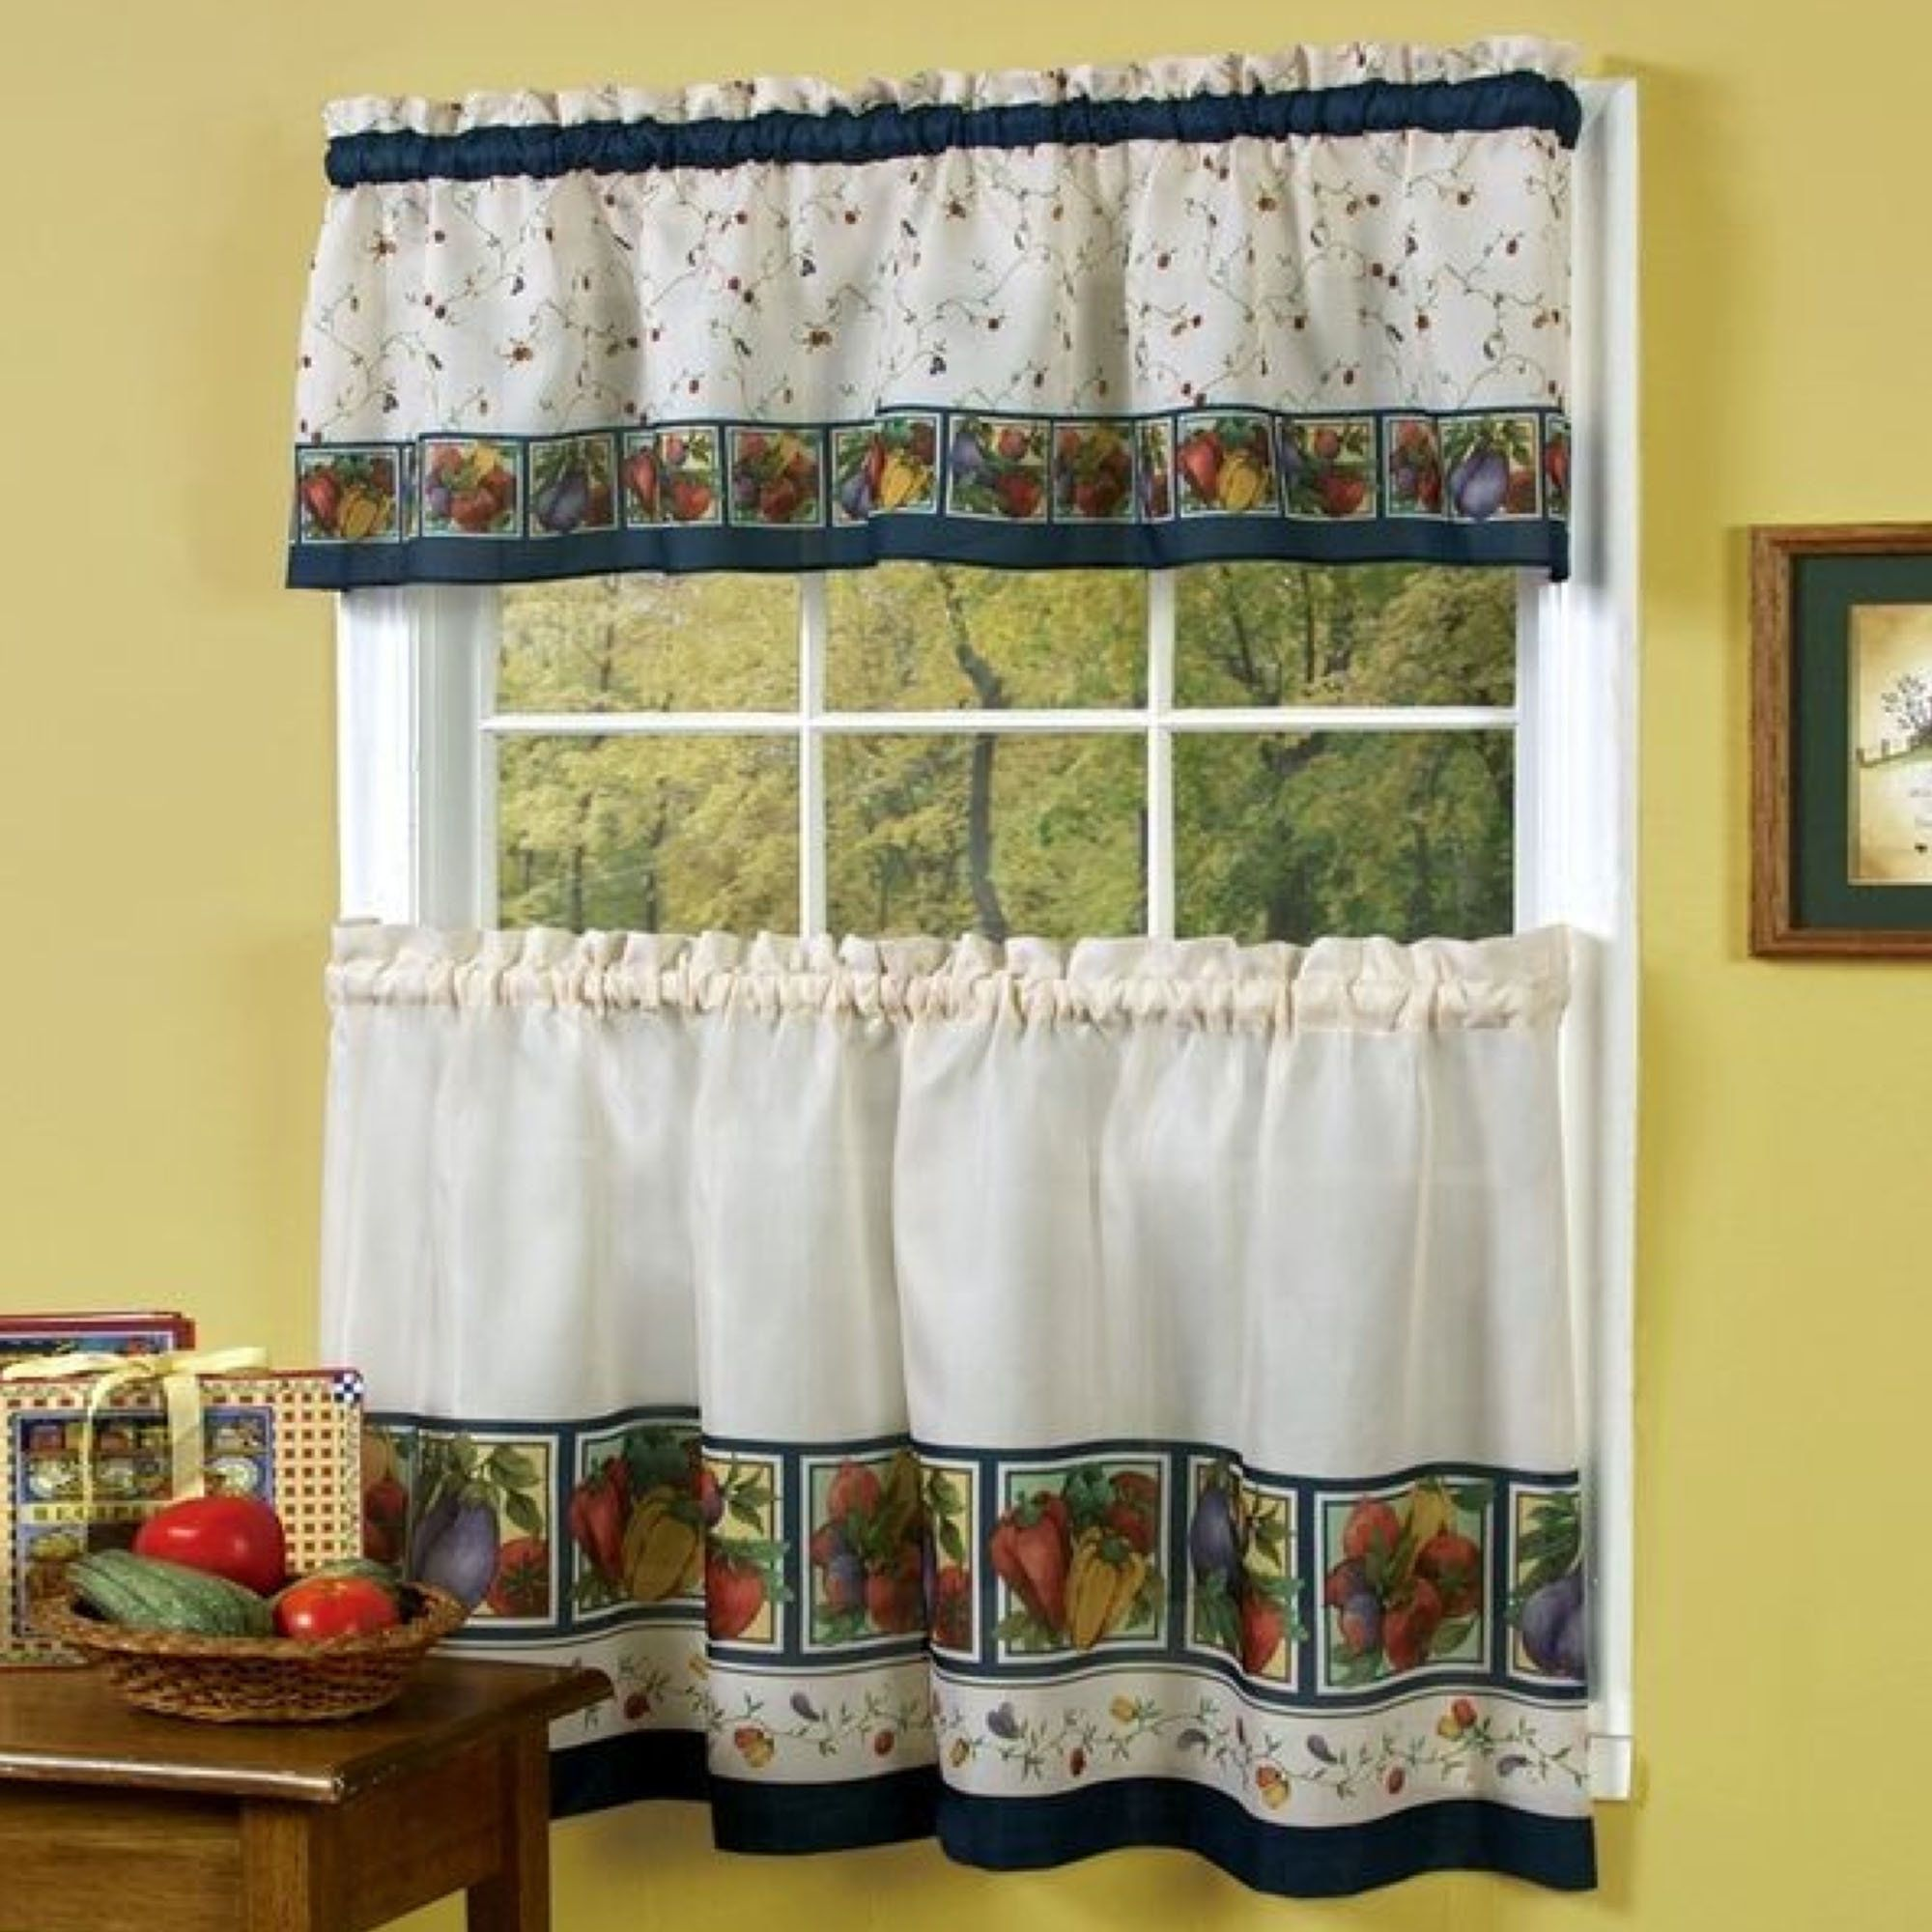 Pin On Kitchen Kitchen curtains with fruit design